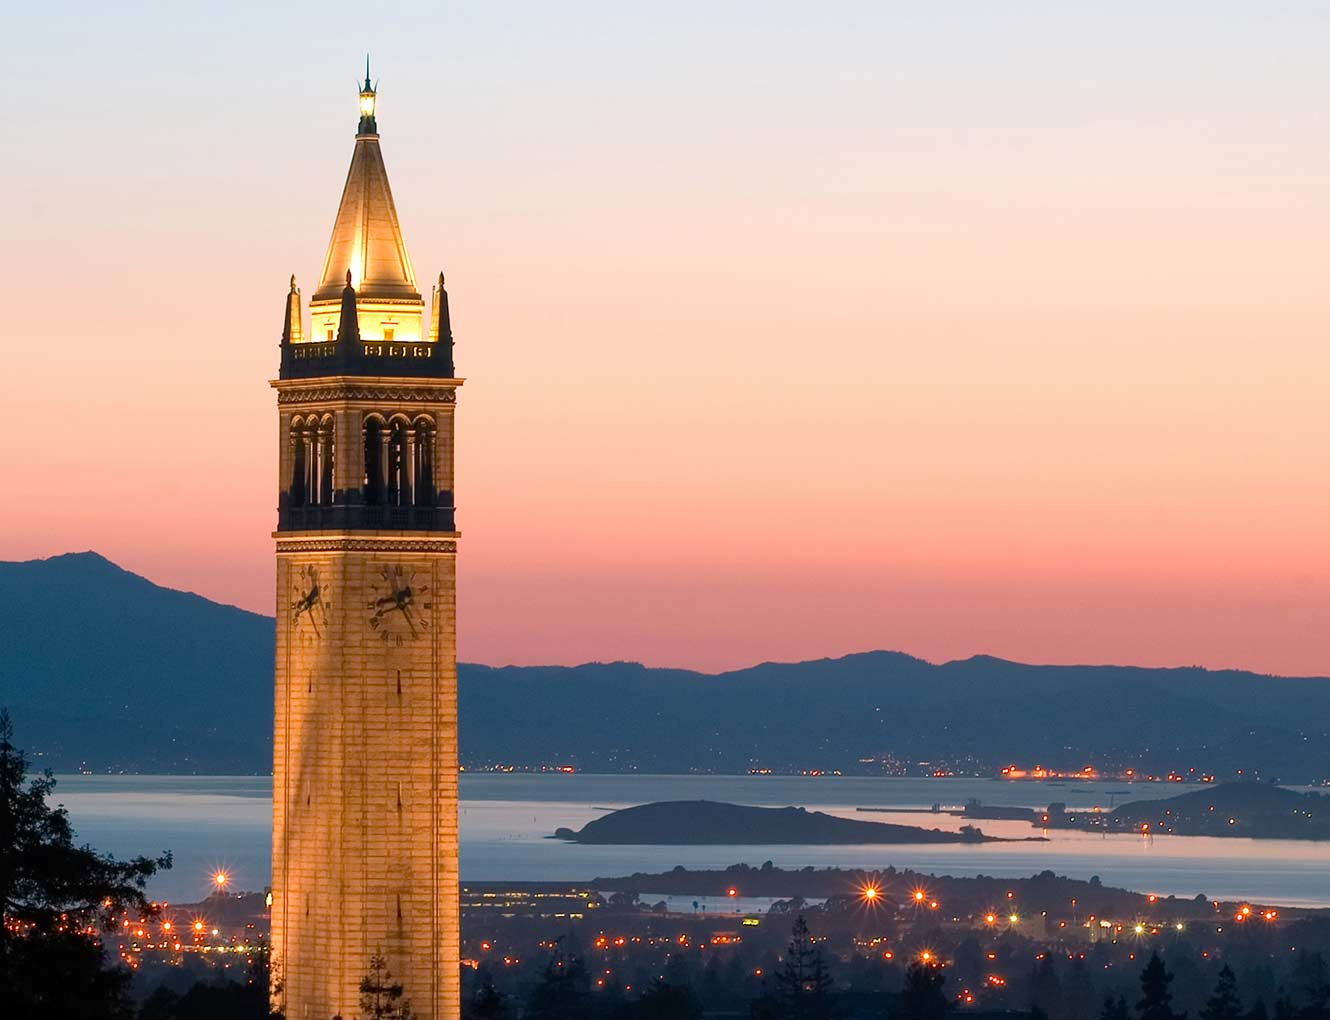 Sather Tower against the sunset